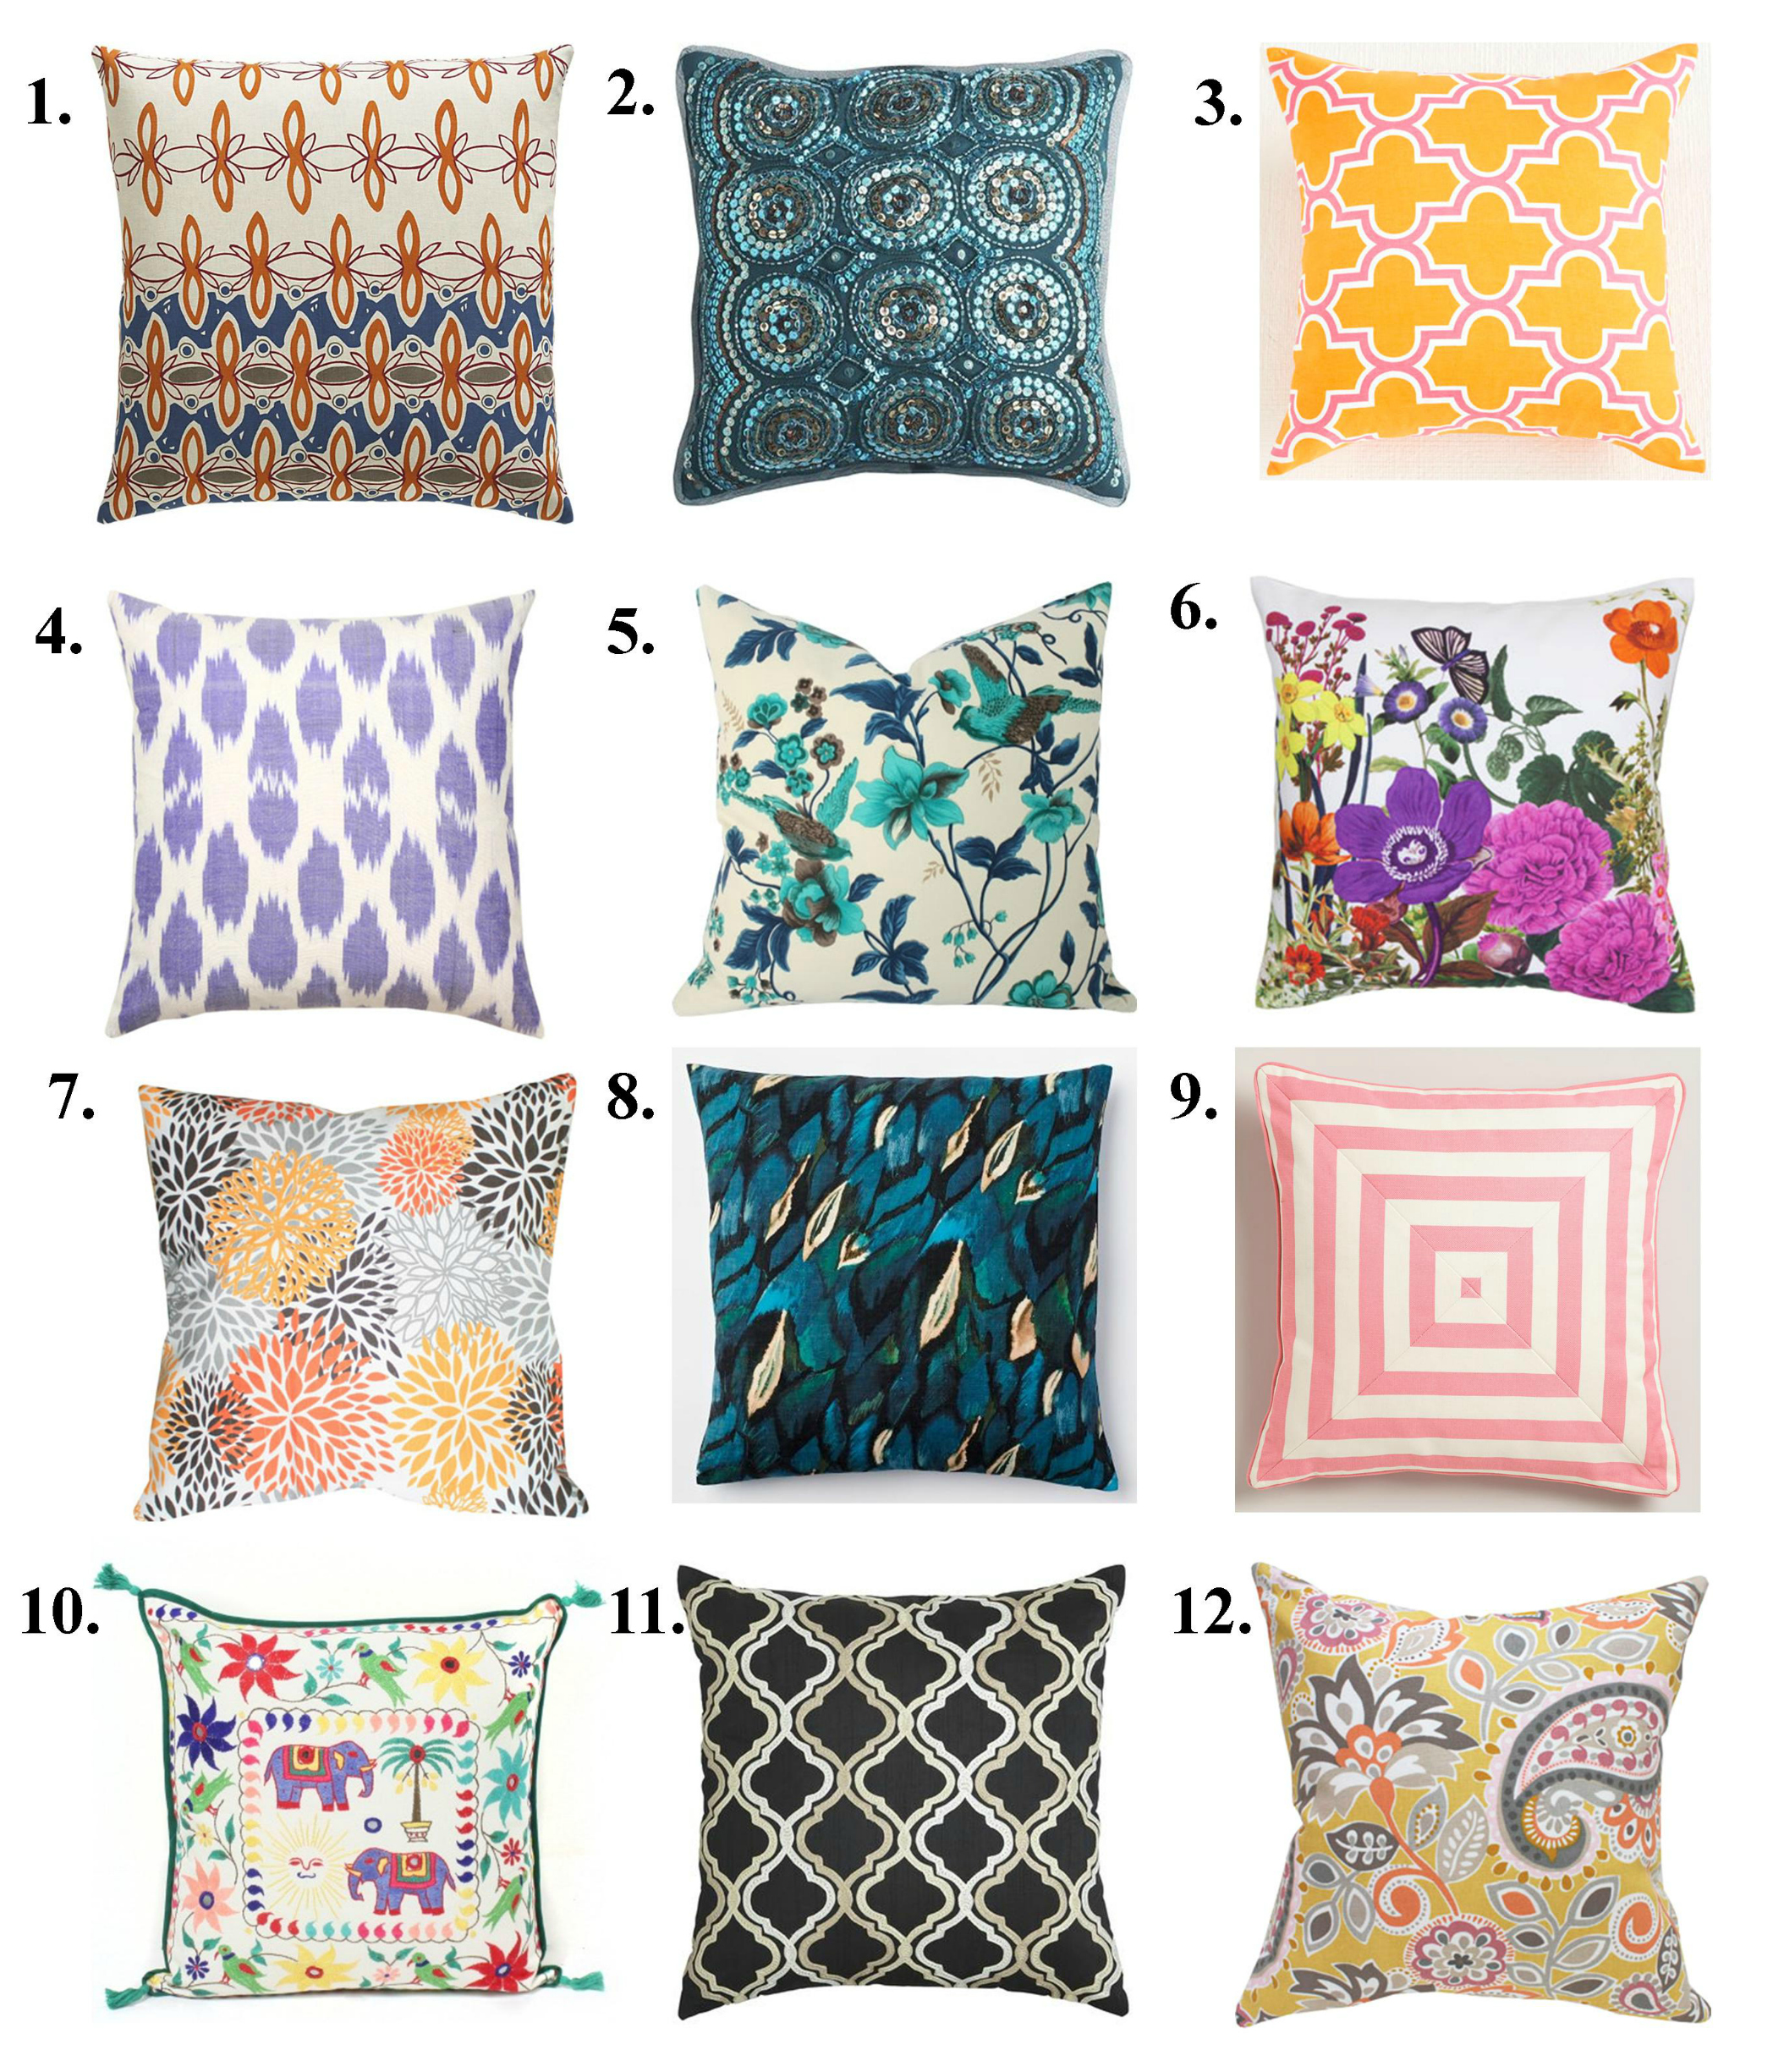 Random Optipns Of Pillows Design Ideas